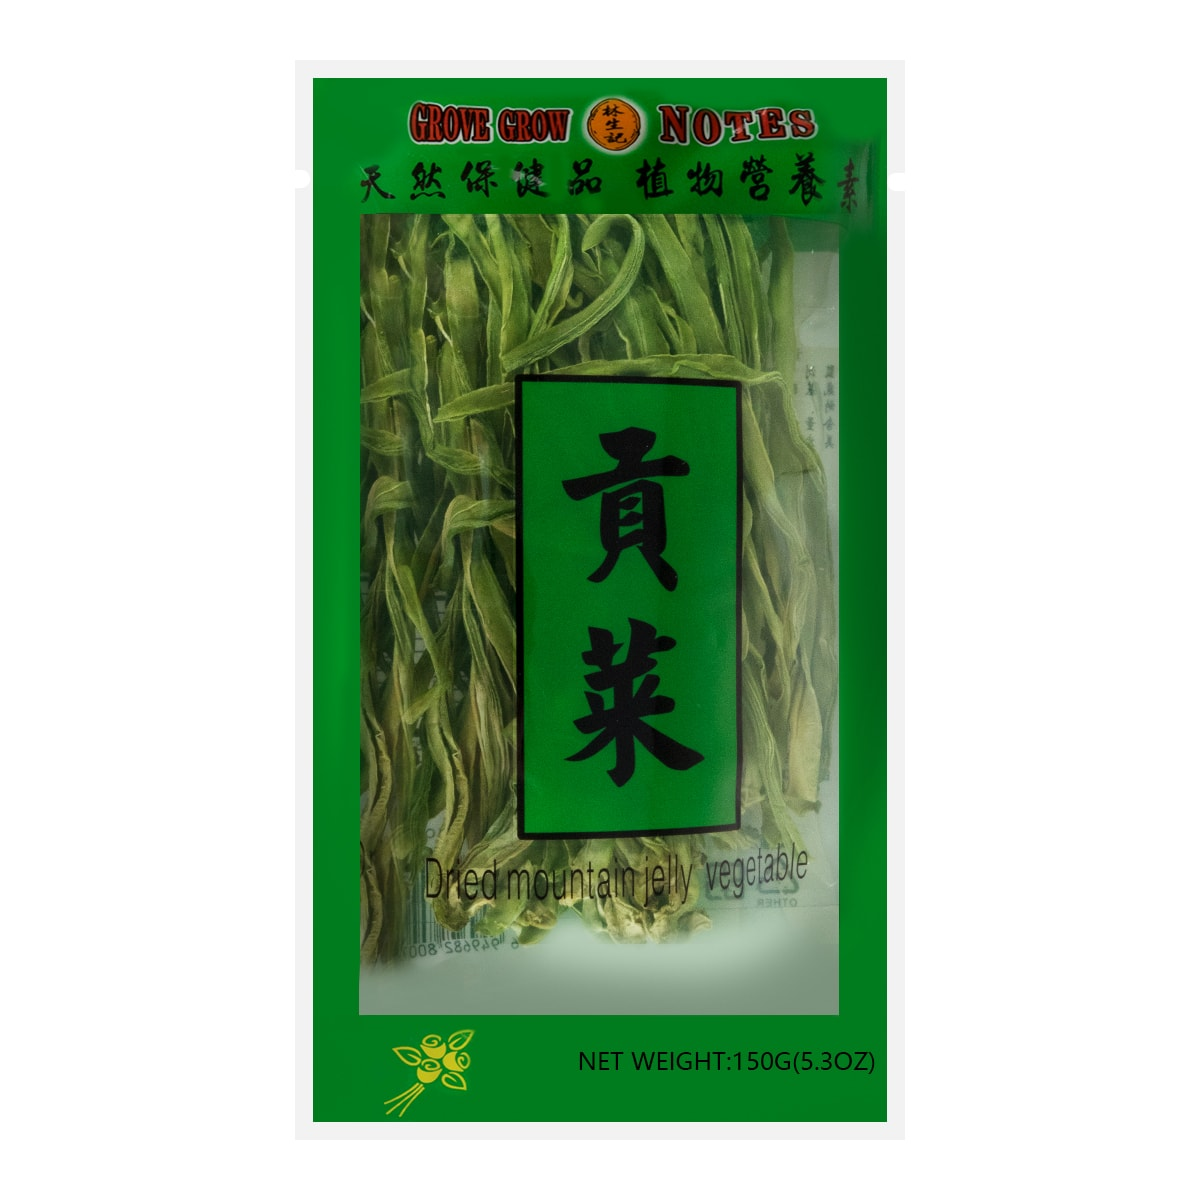 LAM SHENG KEE Dried Mountain Jelly Vegetable 150g